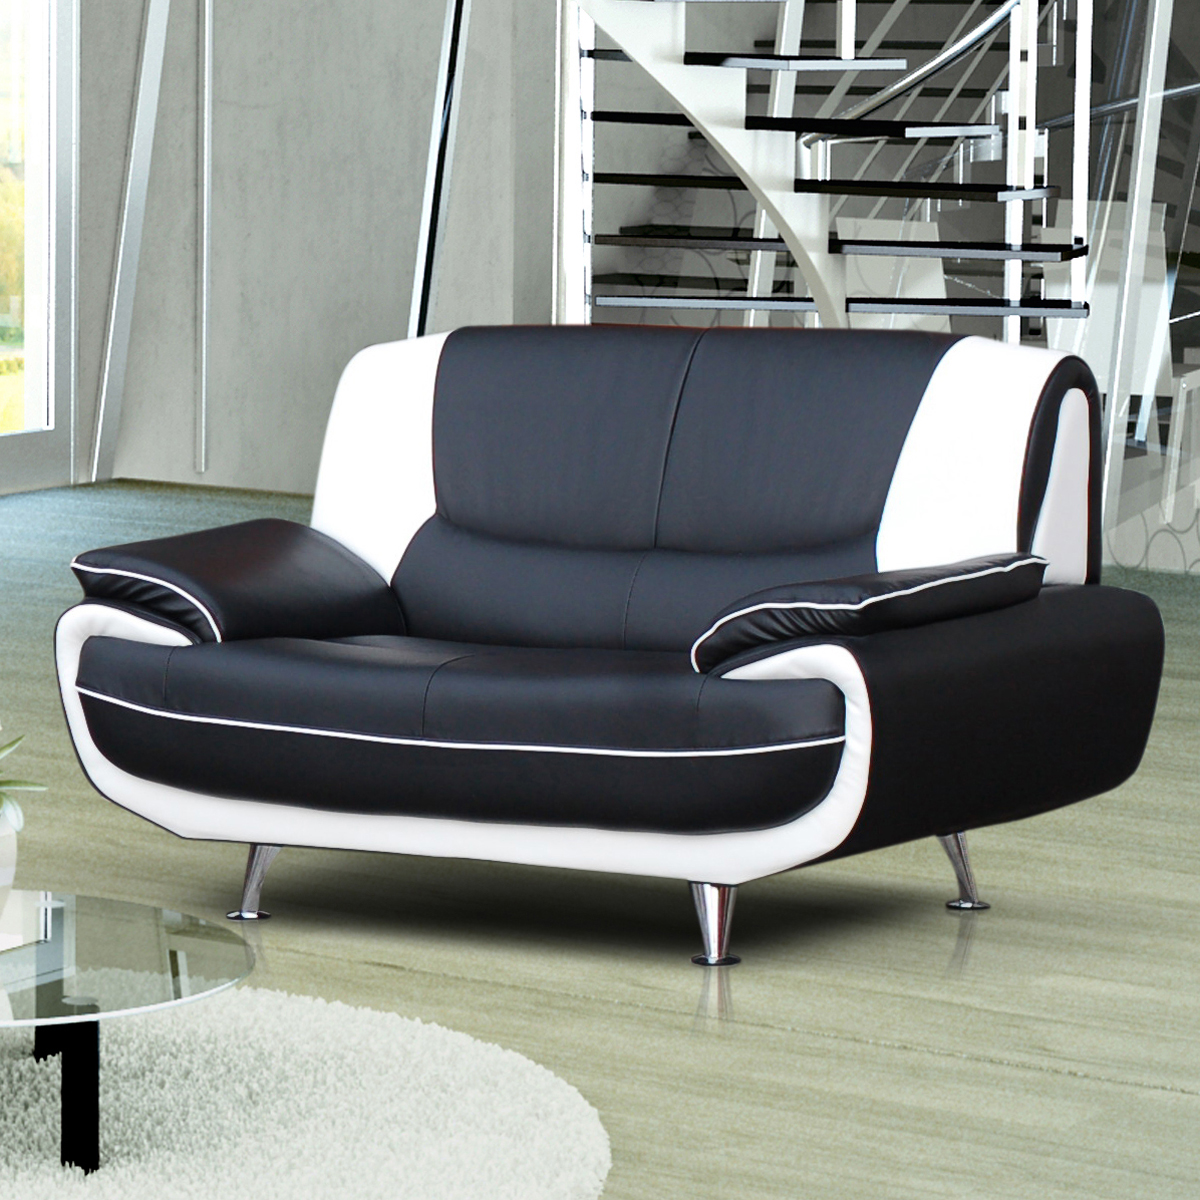 sofa couch ecksofa palermo wohnzimmer designer eckcouch. Black Bedroom Furniture Sets. Home Design Ideas